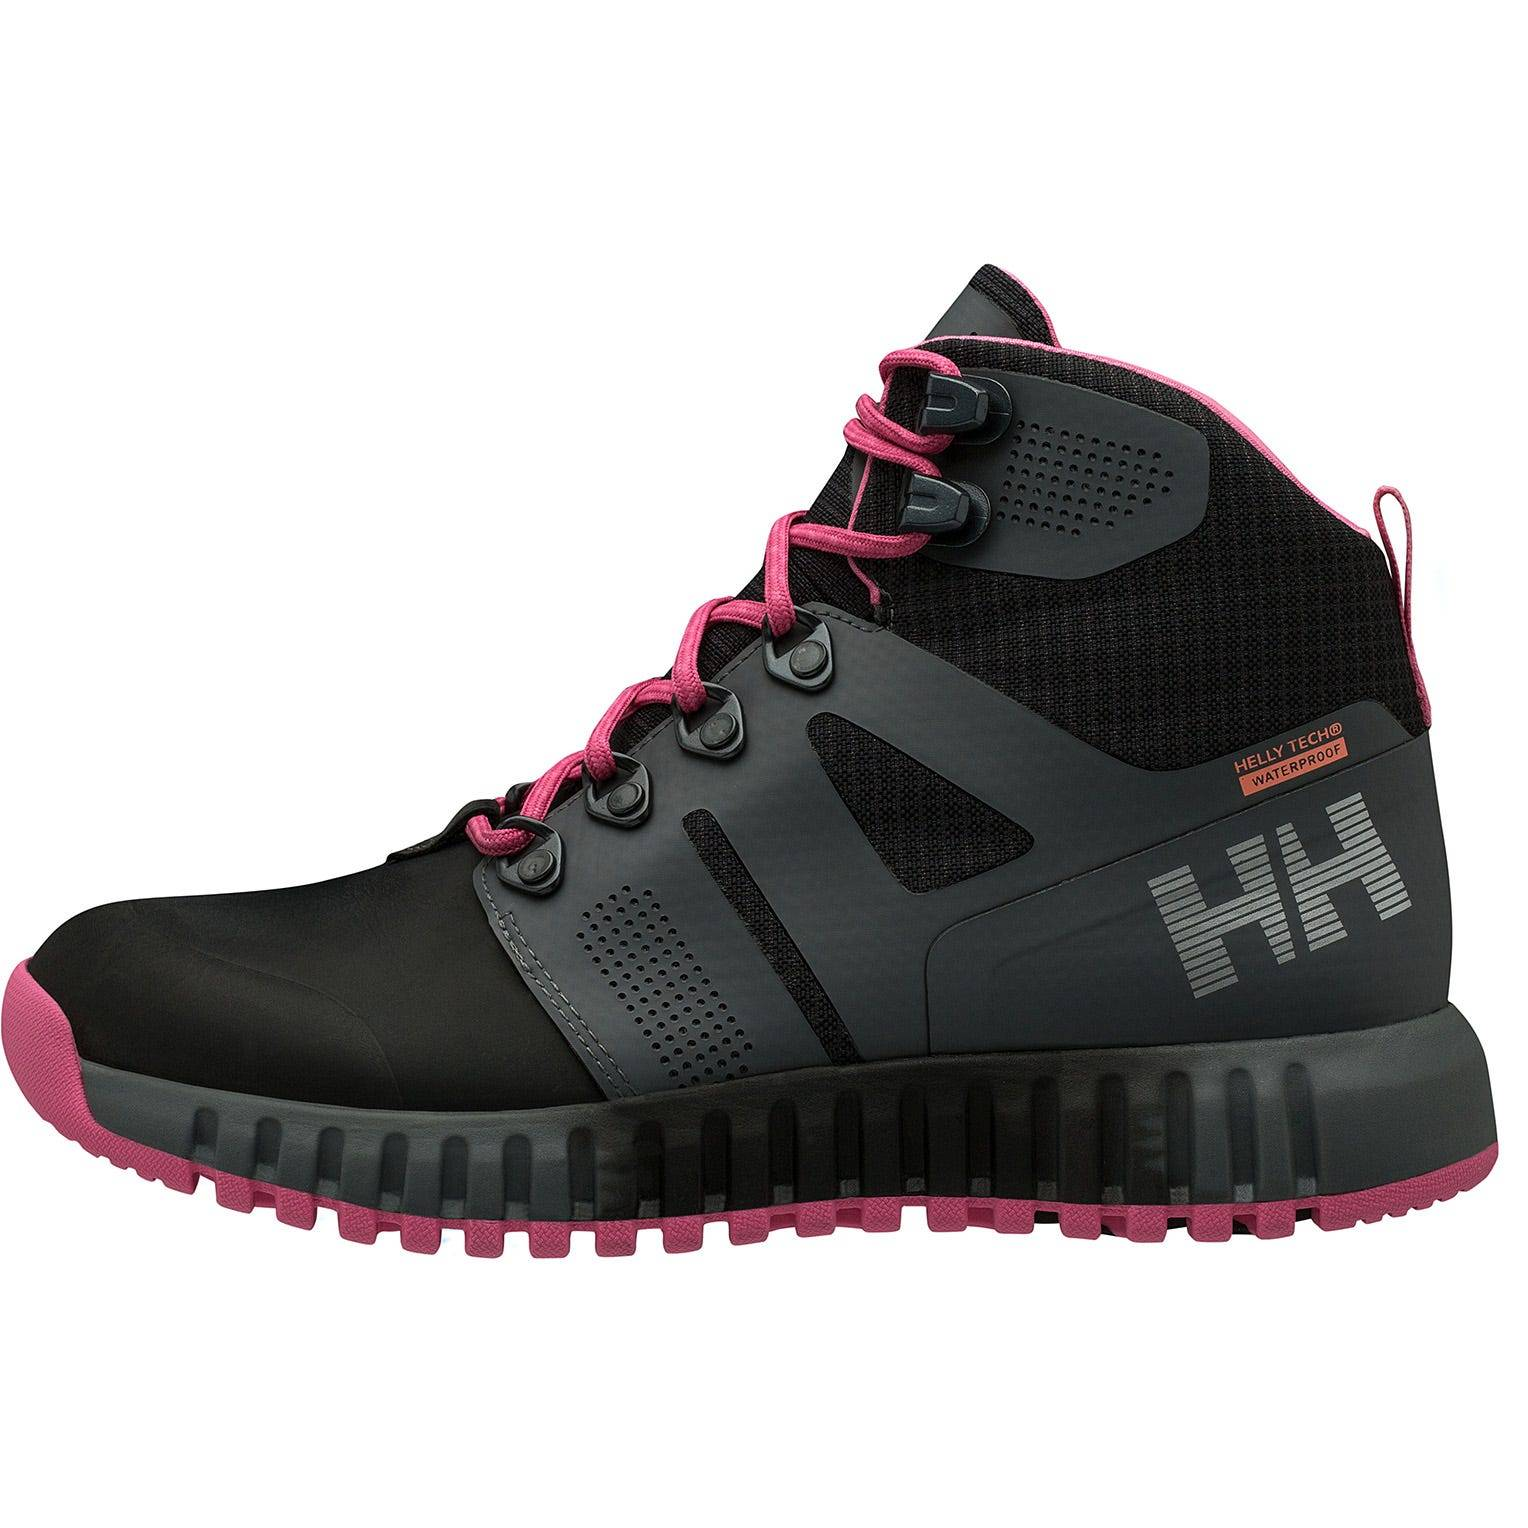 Helly Hansen W Vanir Gallivant Ht Womens Hiking Boot Black 41/9.5